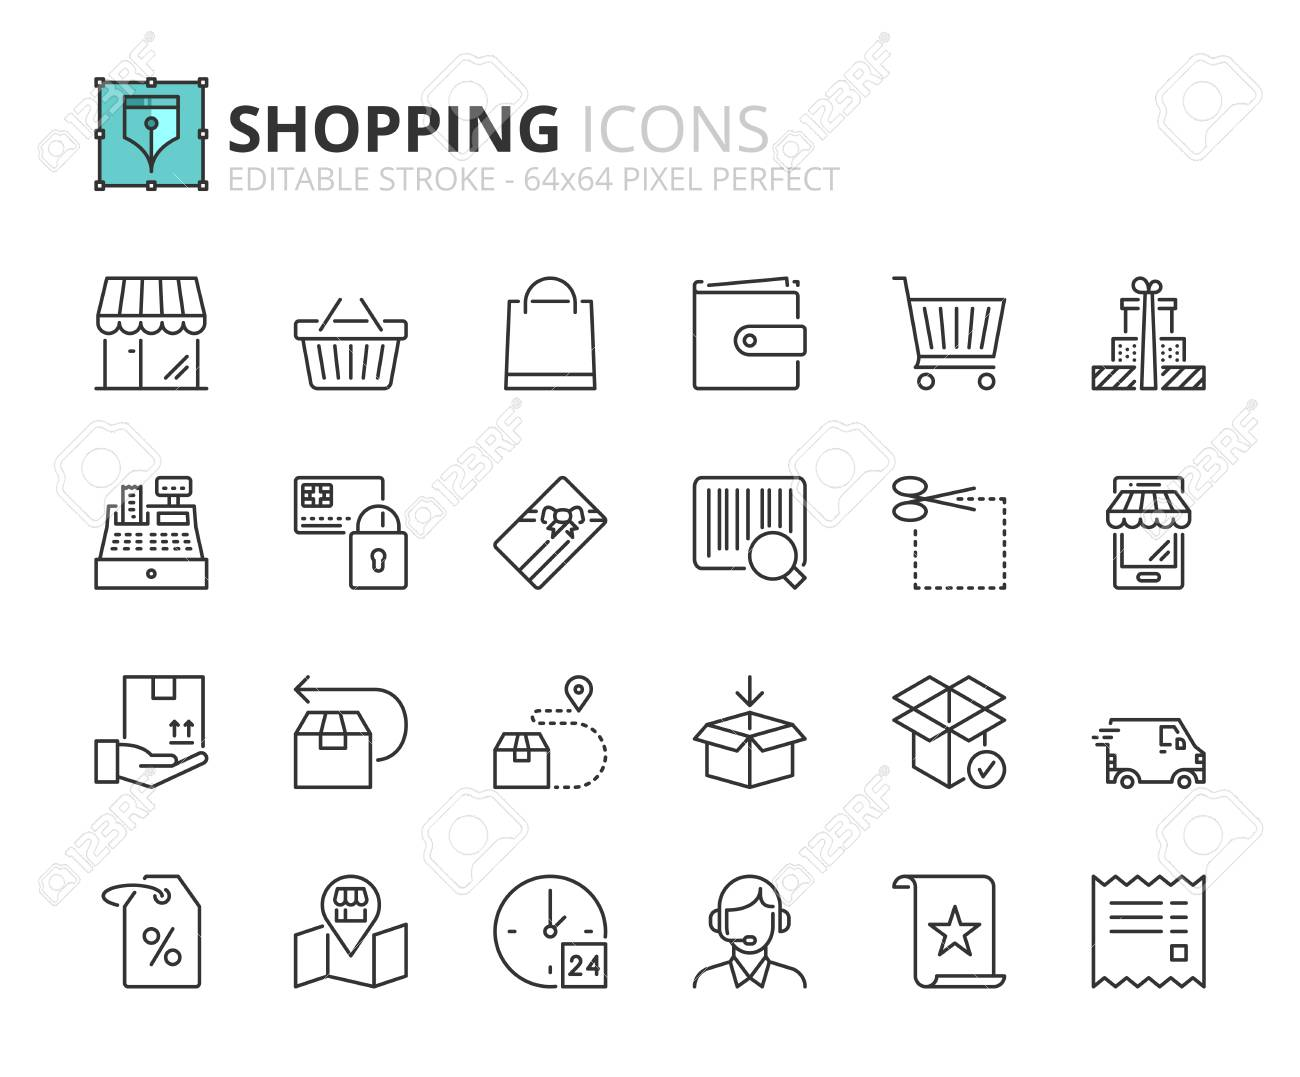 Outline icons about shopping  Editable stroke  64x64 pixel perfect